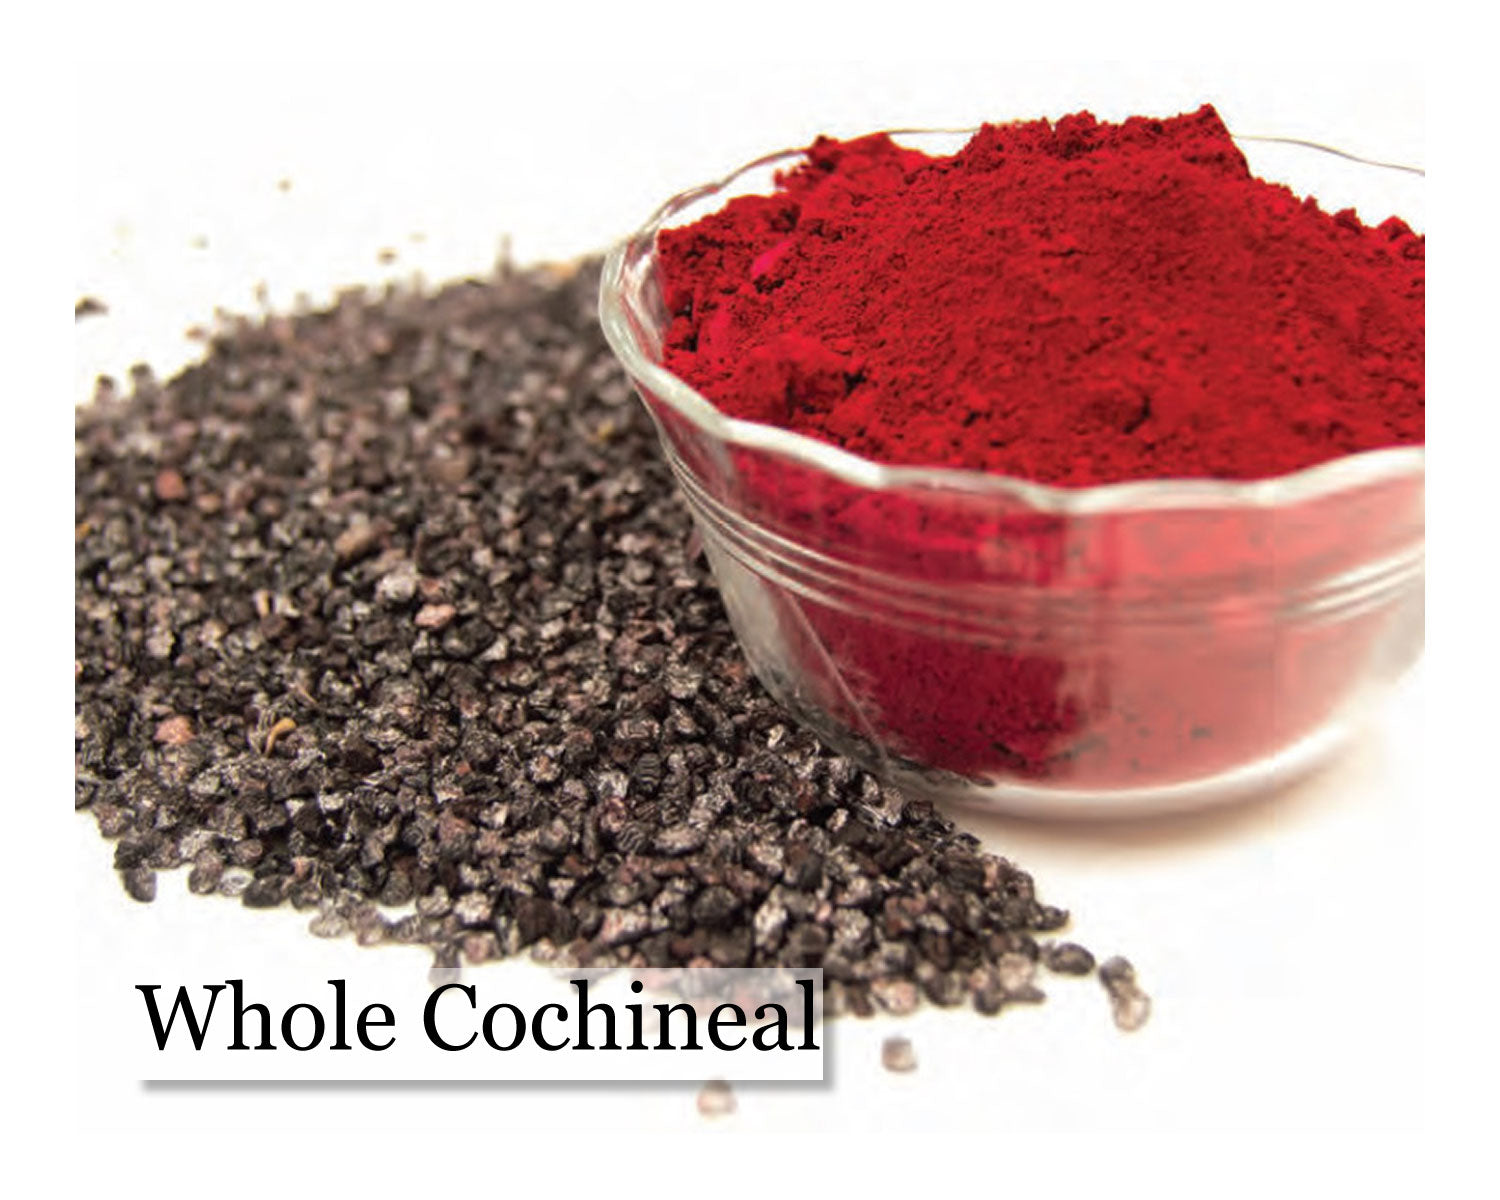 Cochineal - Whole - 16oz - Wholesale